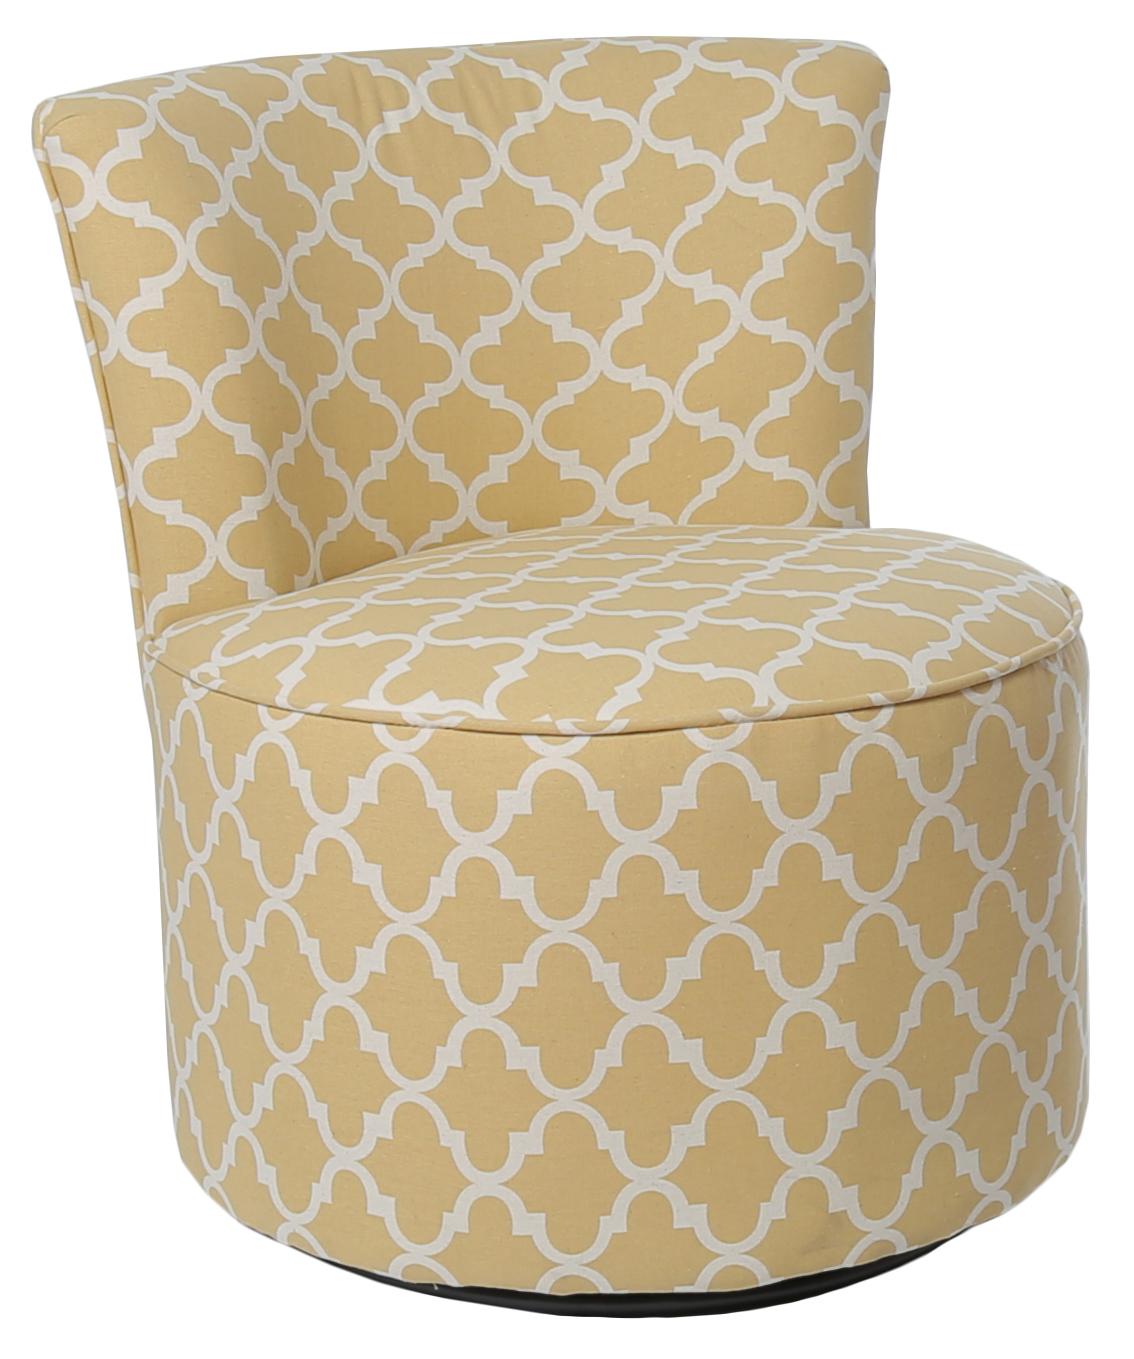 "Accent Chair - Swivel Base / Gold "" Lantern "" Fabric"